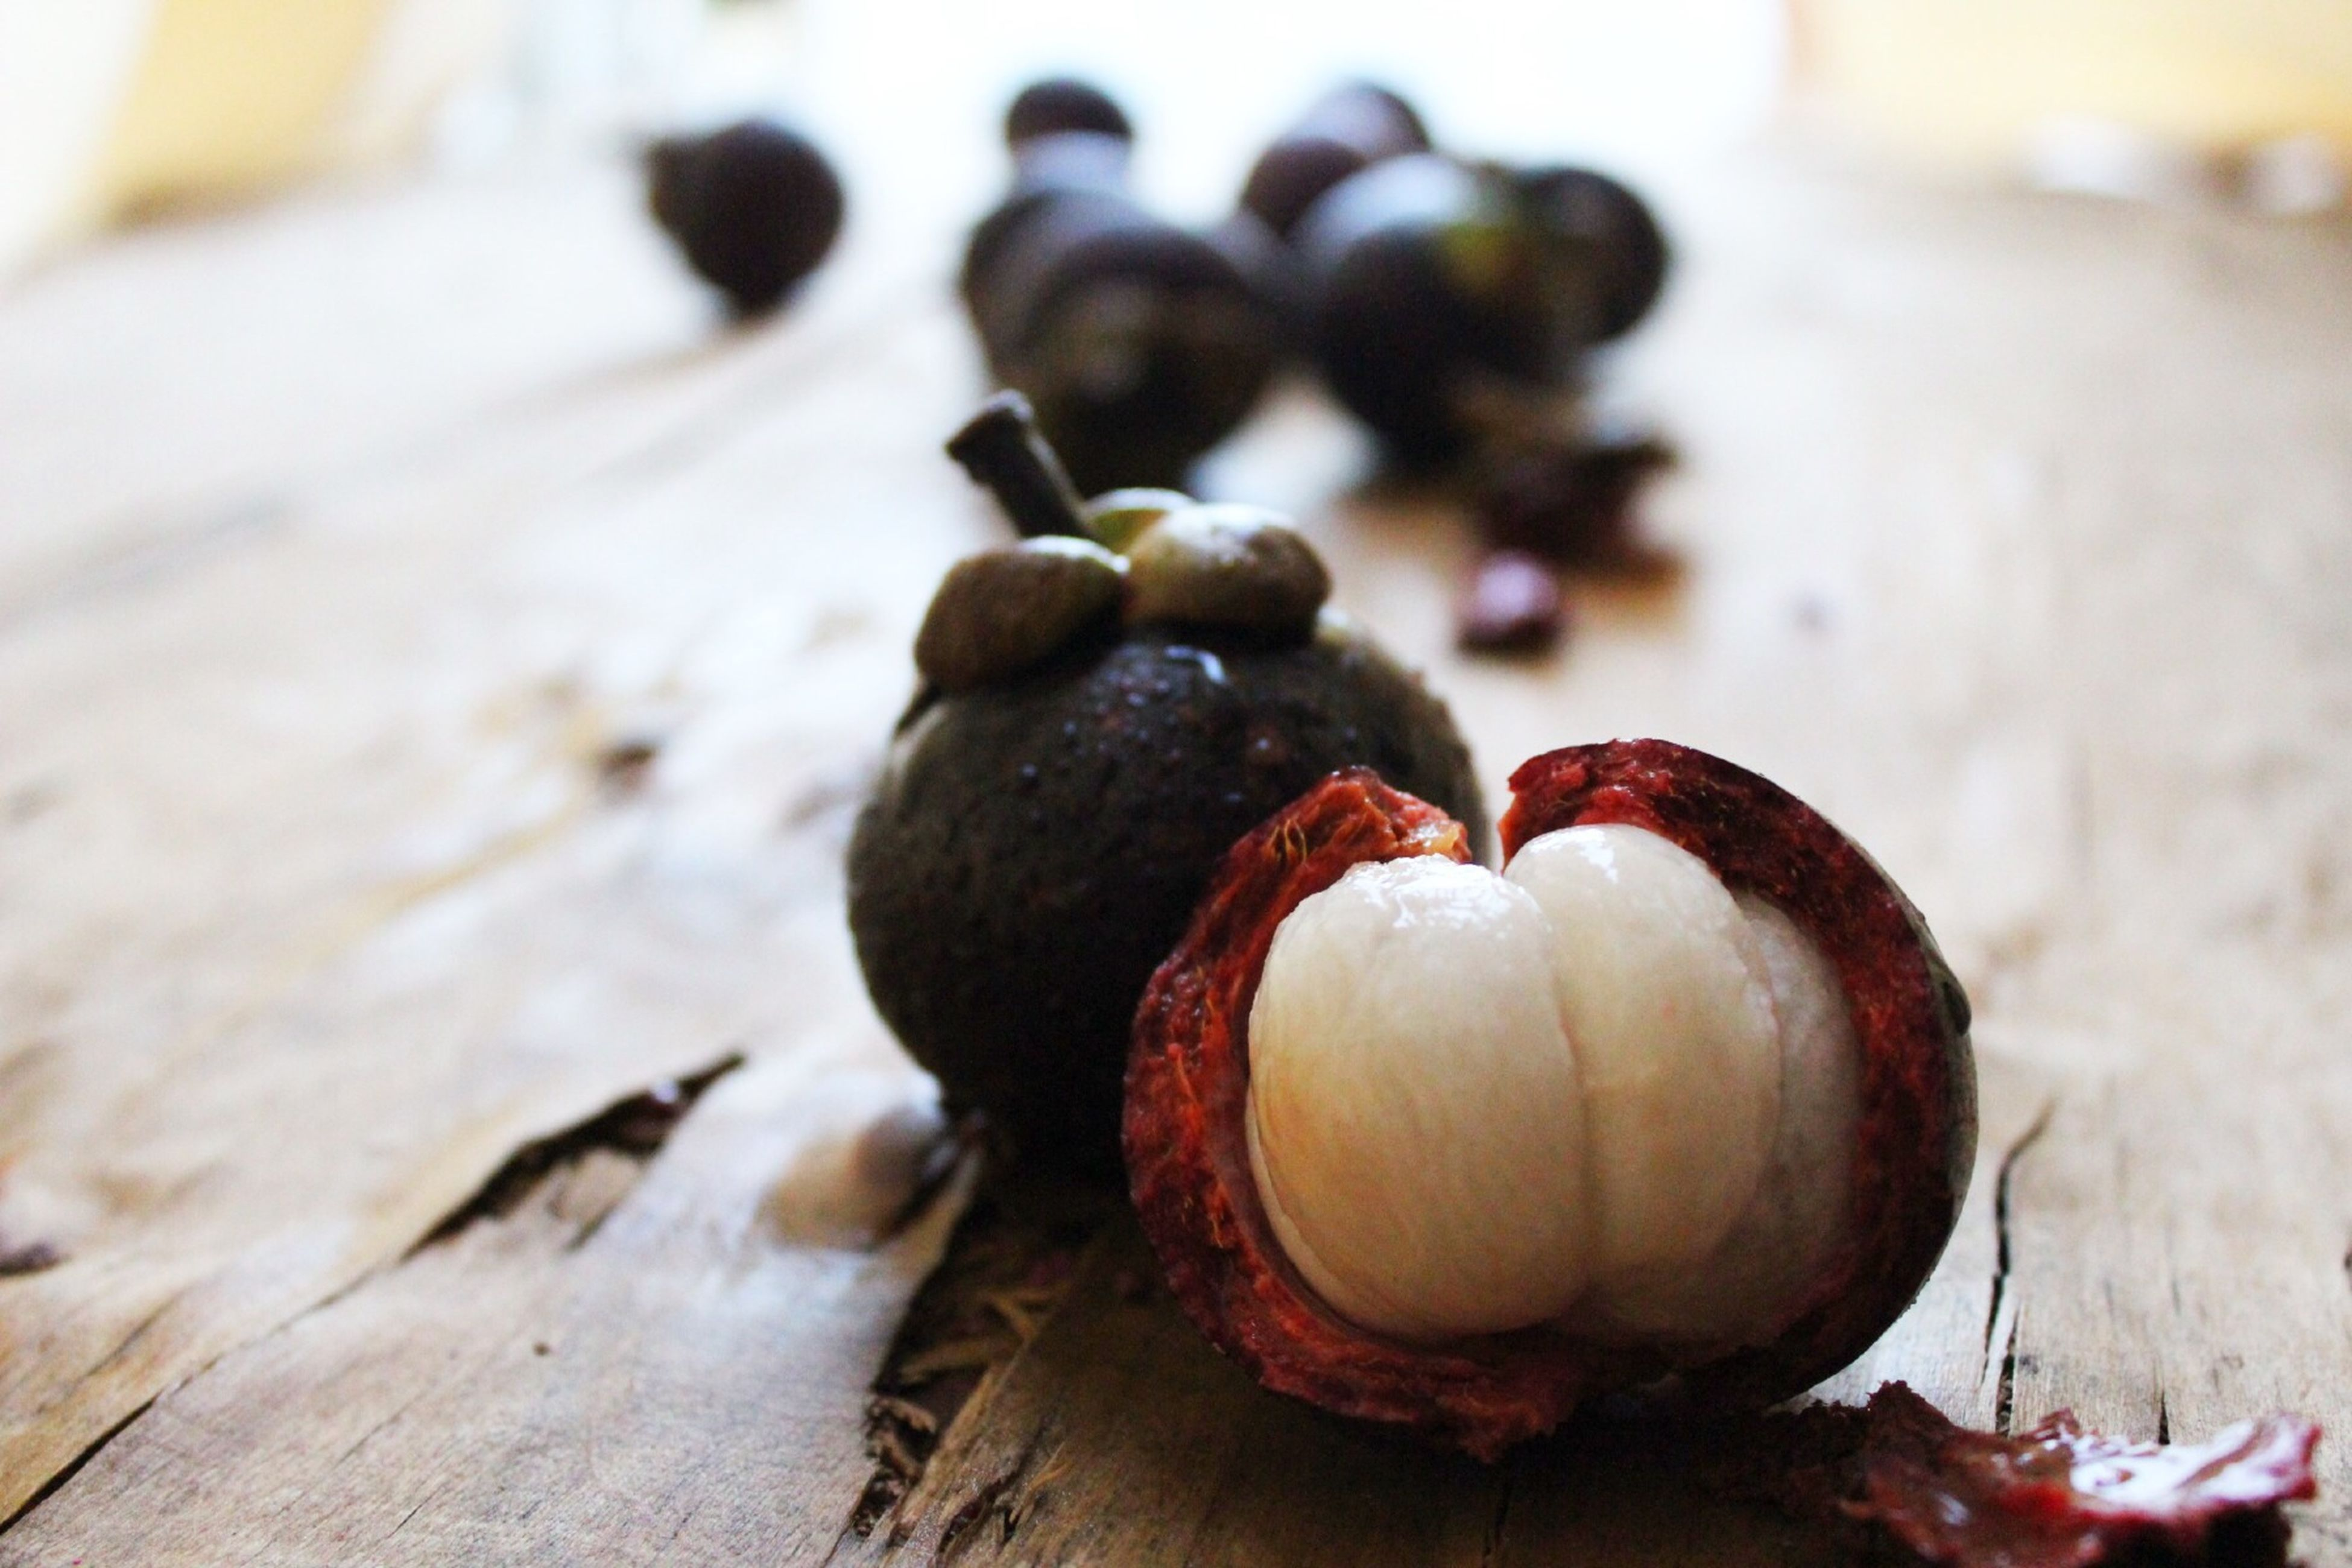 food and drink, food, healthy eating, fruit, close-up, focus on foreground, selective focus, freshness, still life, no people, vegetable, day, outdoors, nature, wood - material, raw food, brown, ripe, organic, nut - food